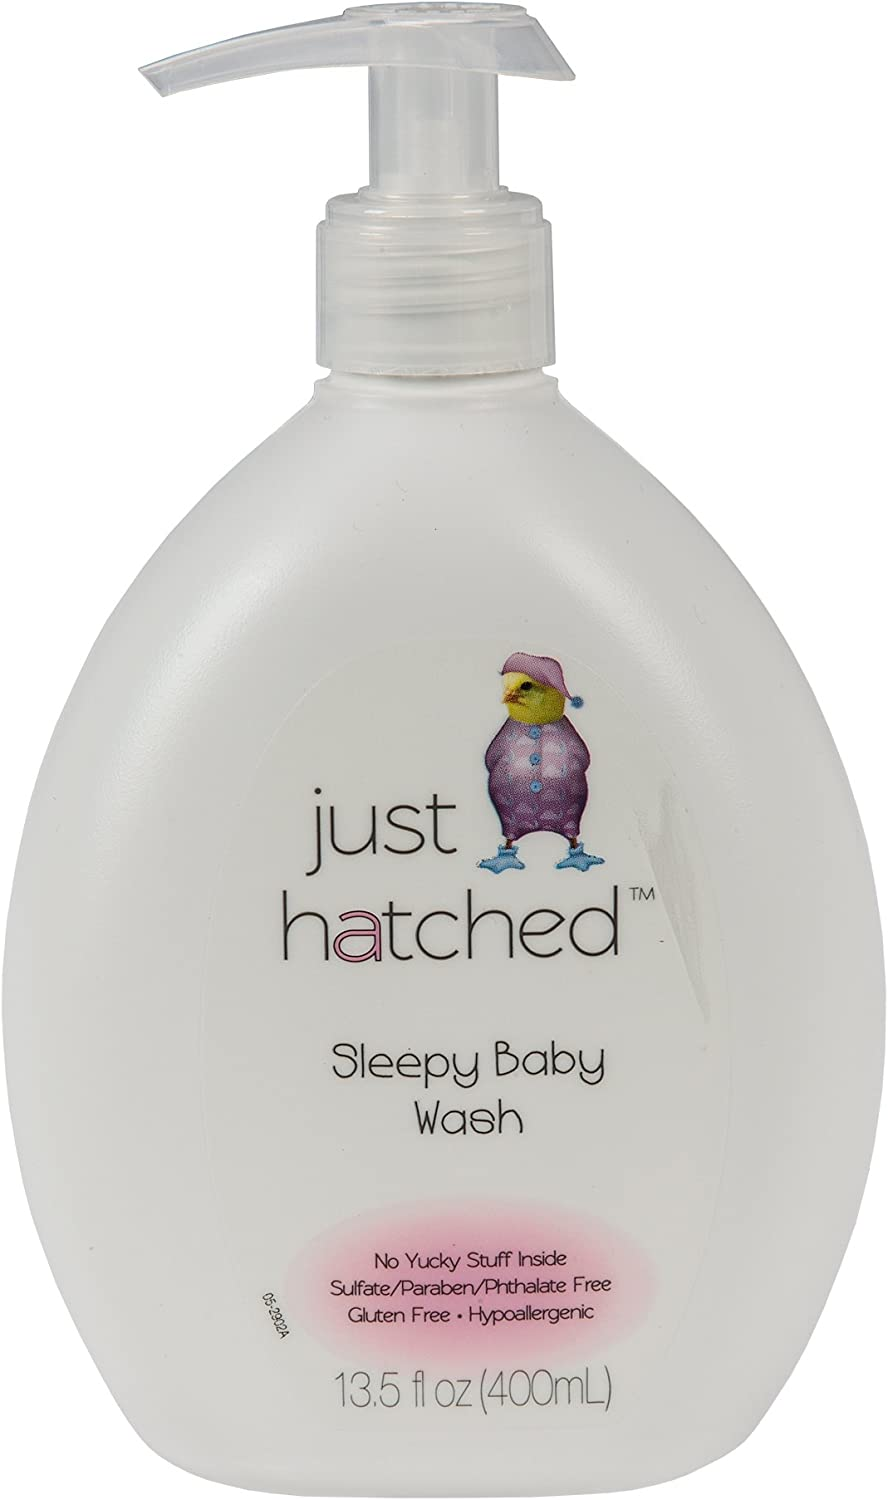 Just Hatched Sleepy Baby Wash, Made with Essential Oils, Relaxing, Calming, Moisturizing, Gluten Free, Hypoallergenic, 13.5 fl oz